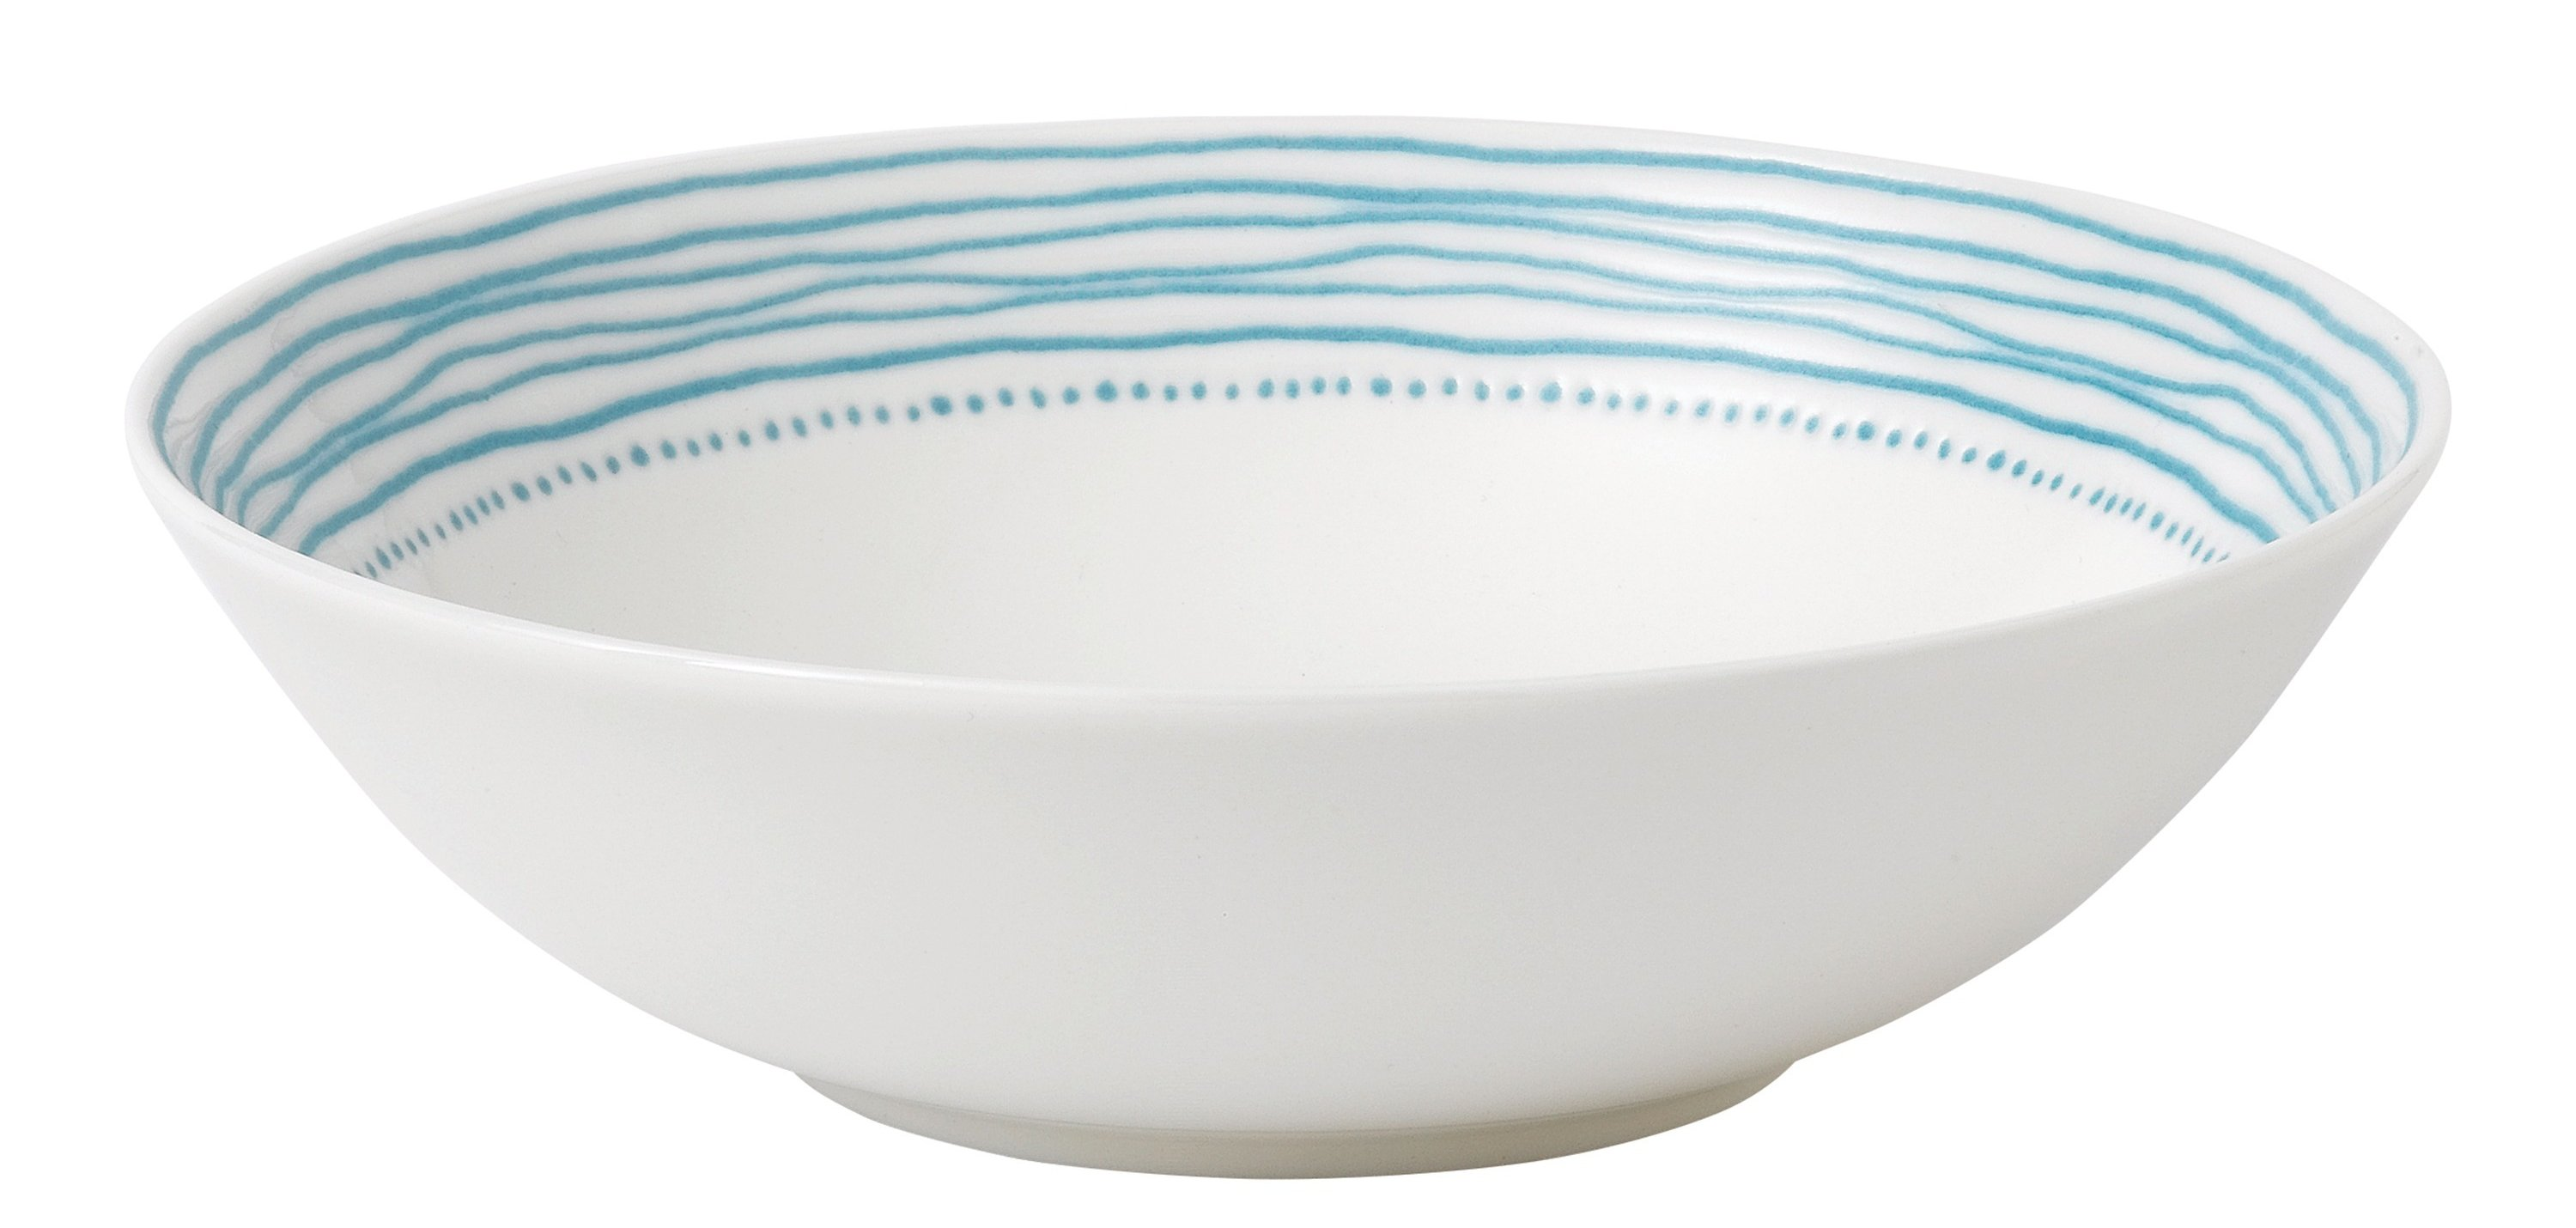 Royal Doulton ED Dots saladeschaal � 20cm